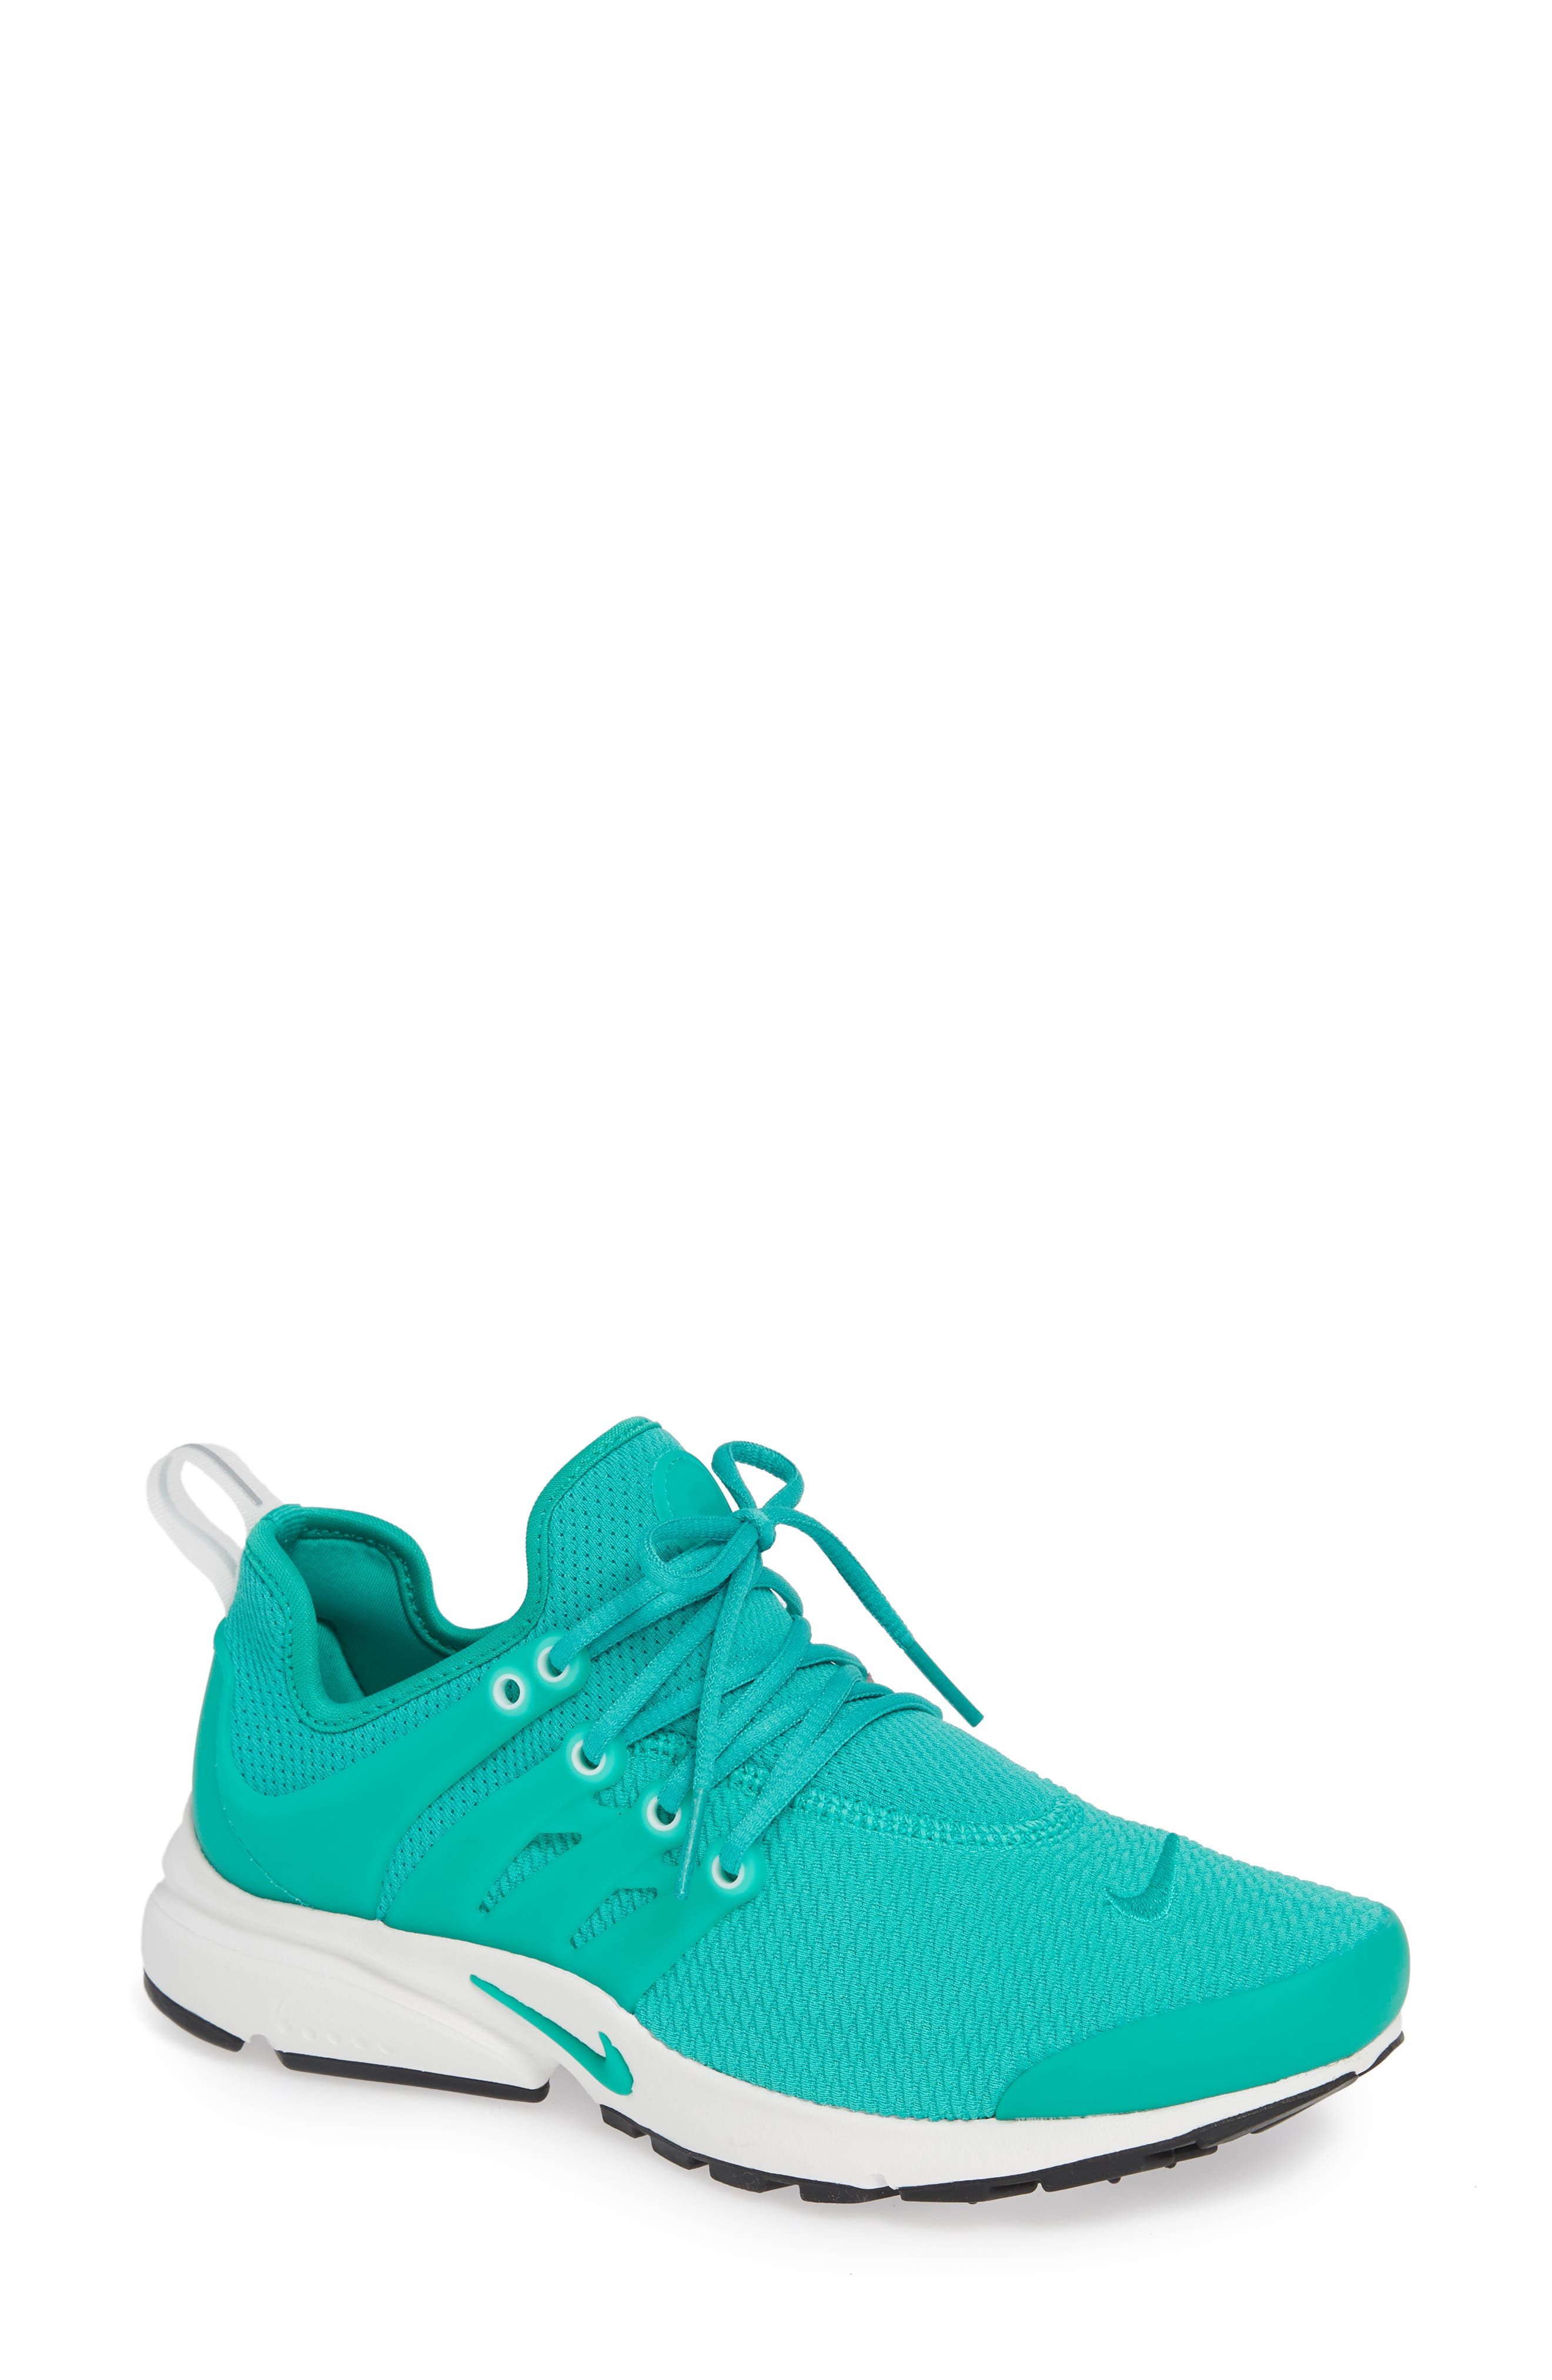 Air Presto Sneaker,                         Main,                         color, CLEAR EMERALD/ SUMMIT WHITE